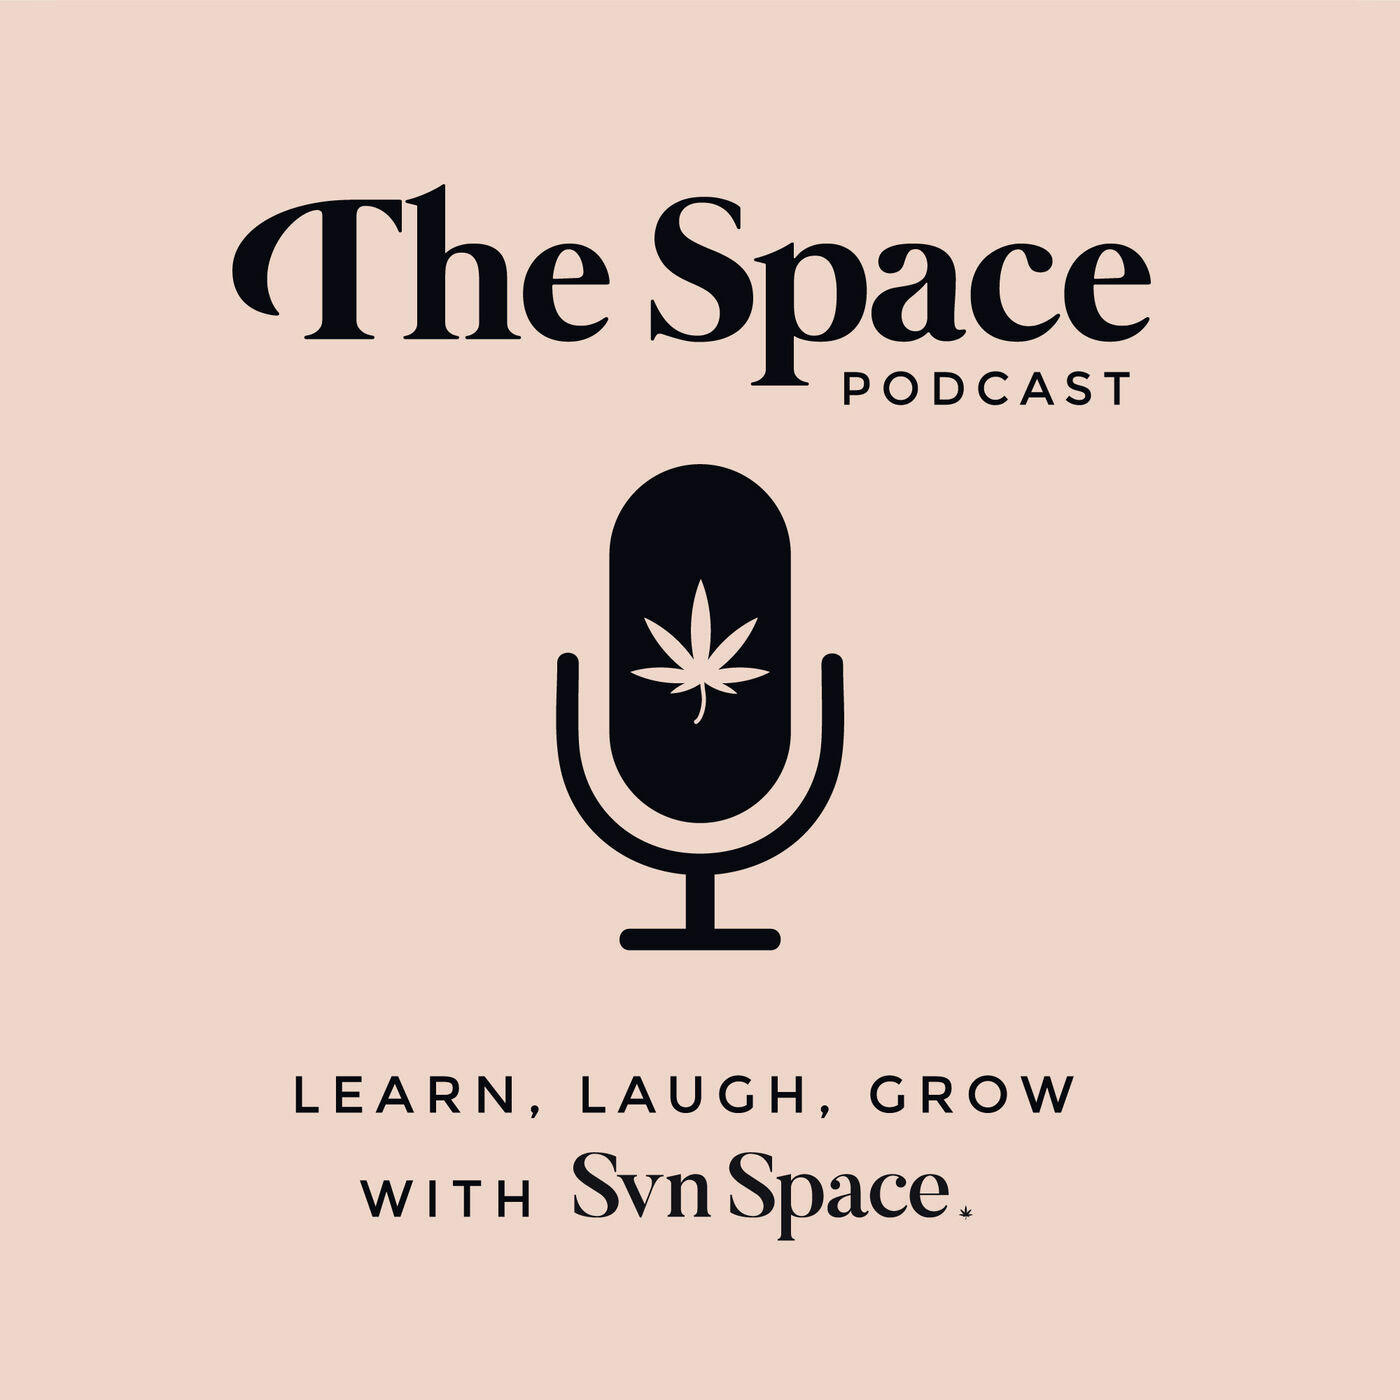 THE Space by Svn Space Podcast